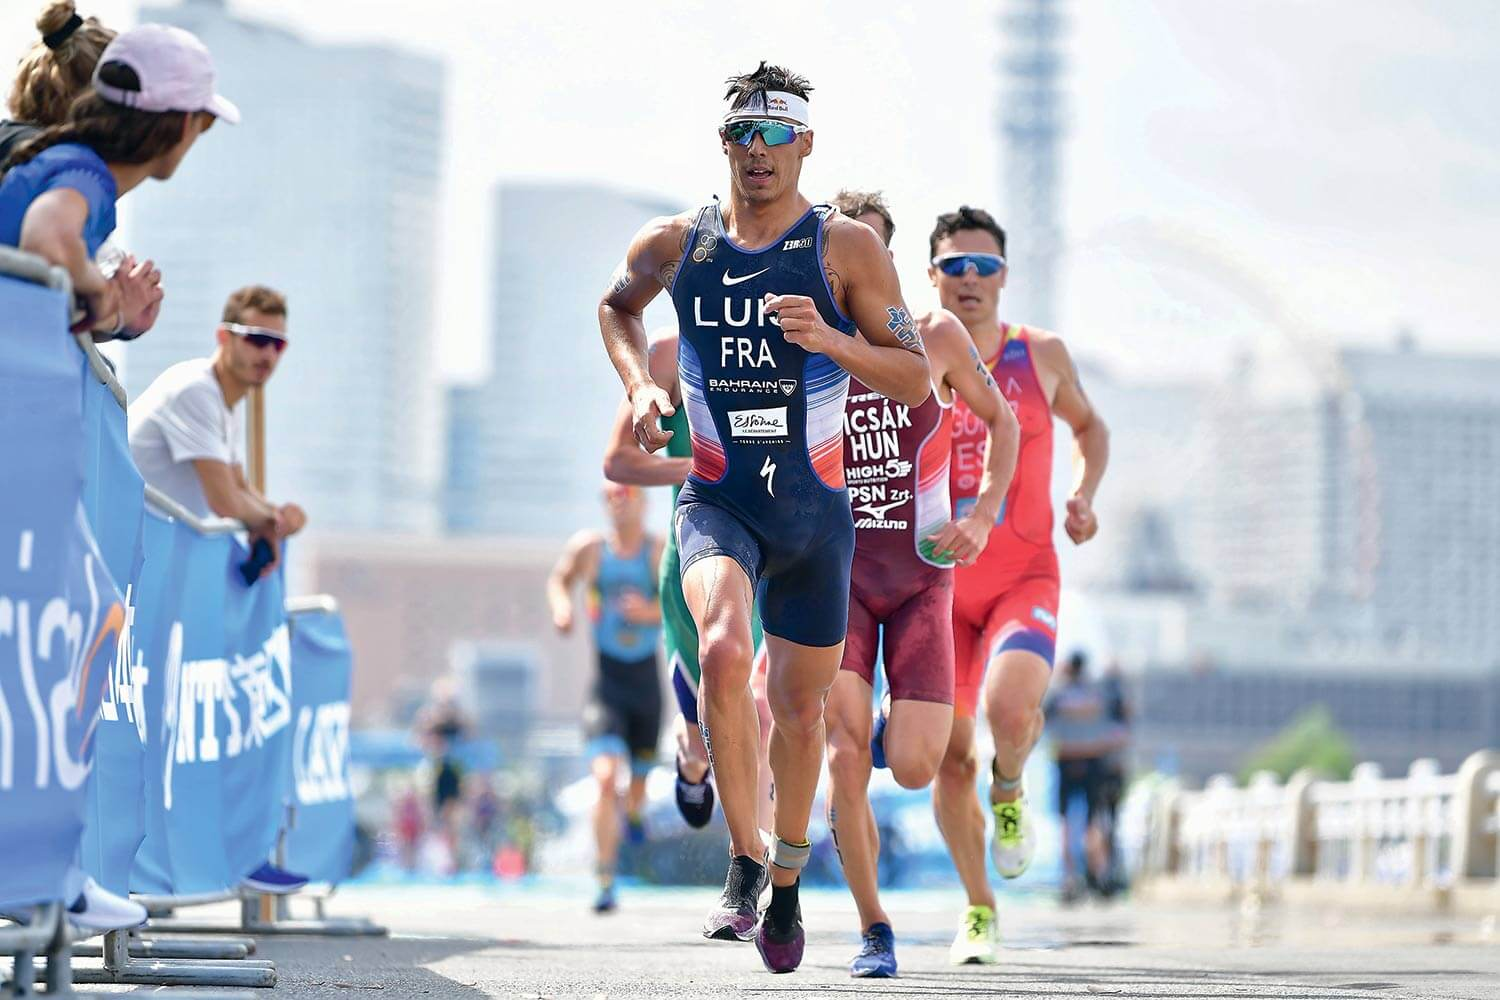 Vincent Luis, champion du monde de triathlon 2019